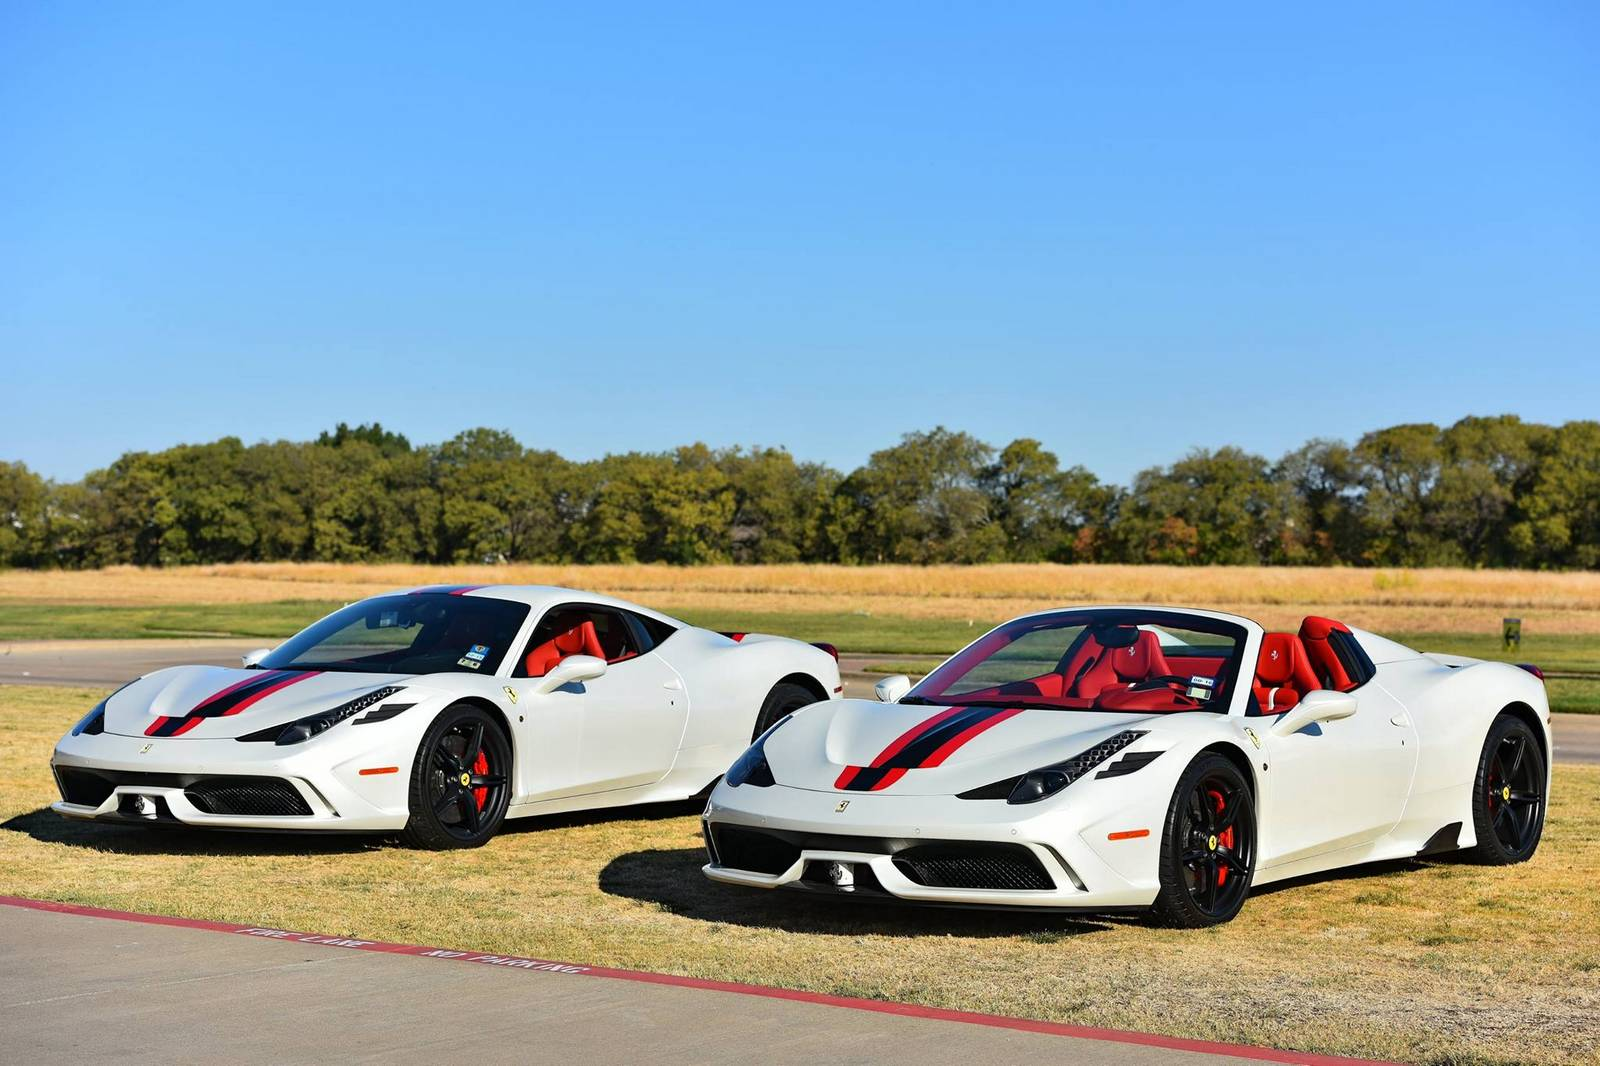 home car news ferrari club of america texas gathering 2015. Cars Review. Best American Auto & Cars Review